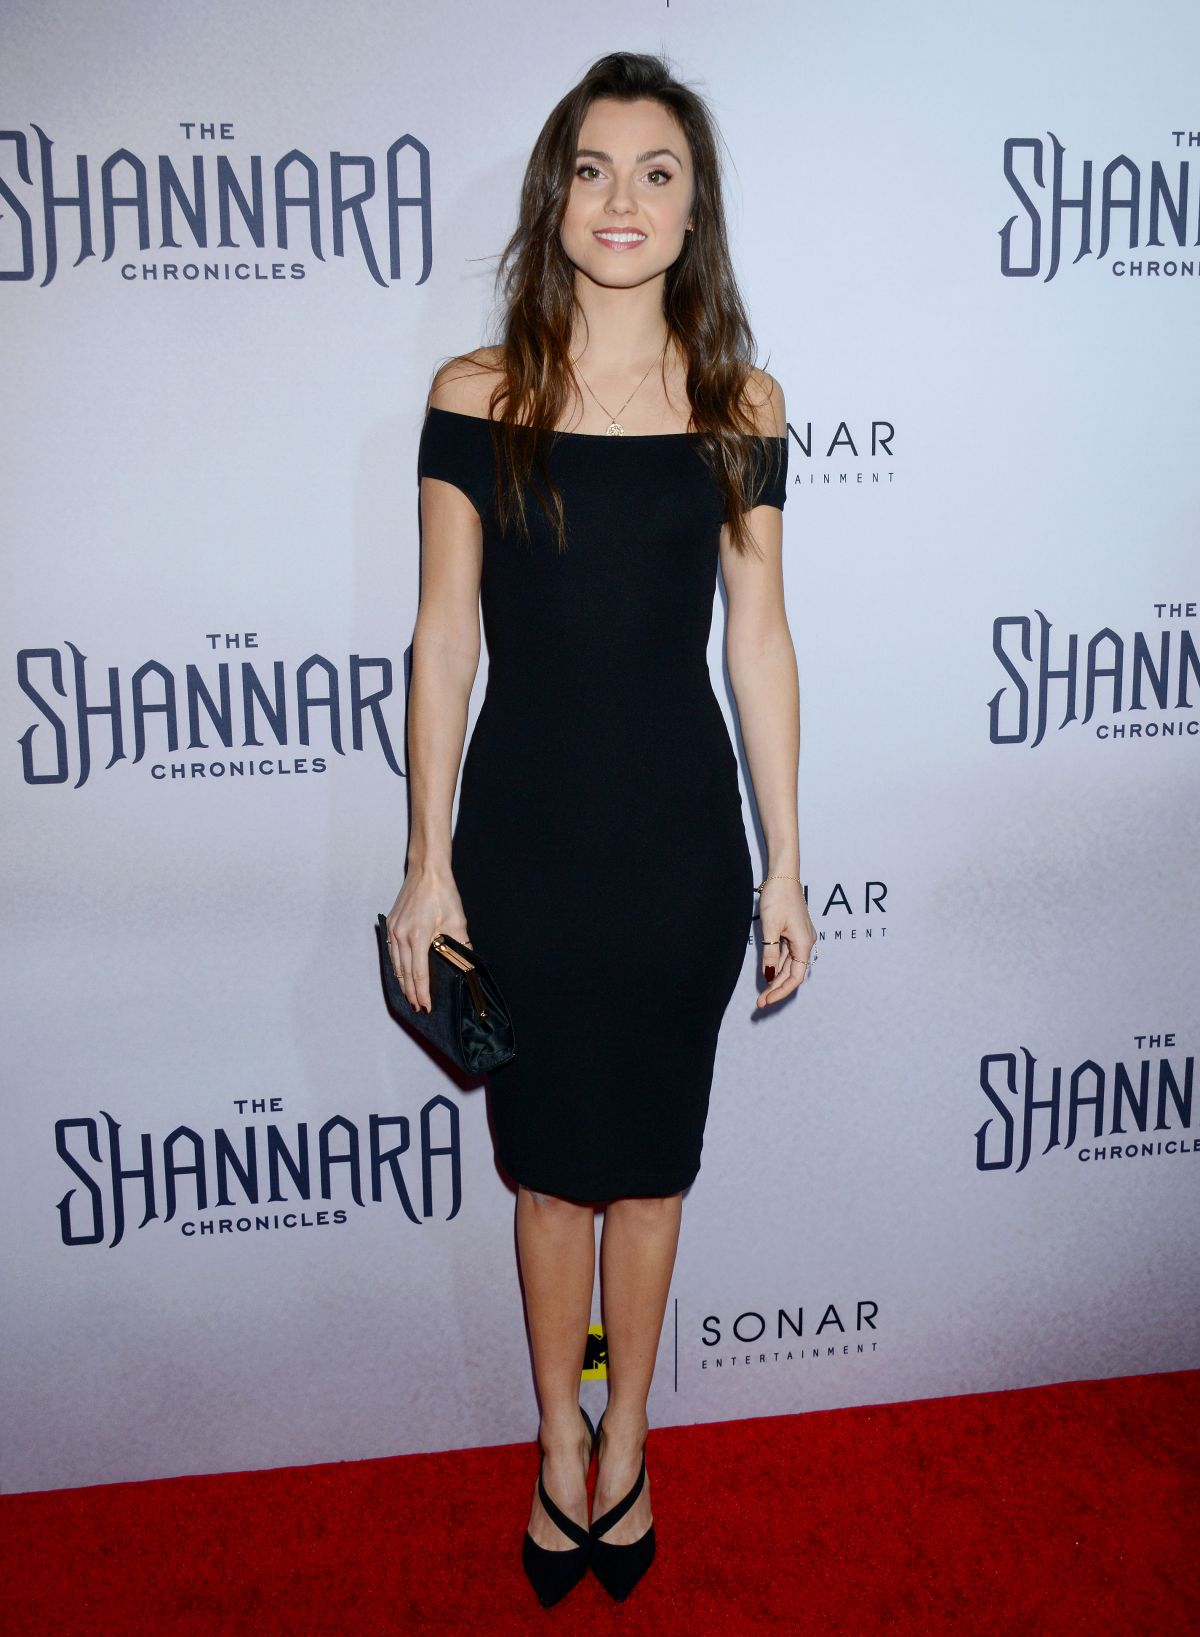 POPPY DRAYTON at The Shannara Chronicles Premiere Party in Los Angeles 12/04/2015